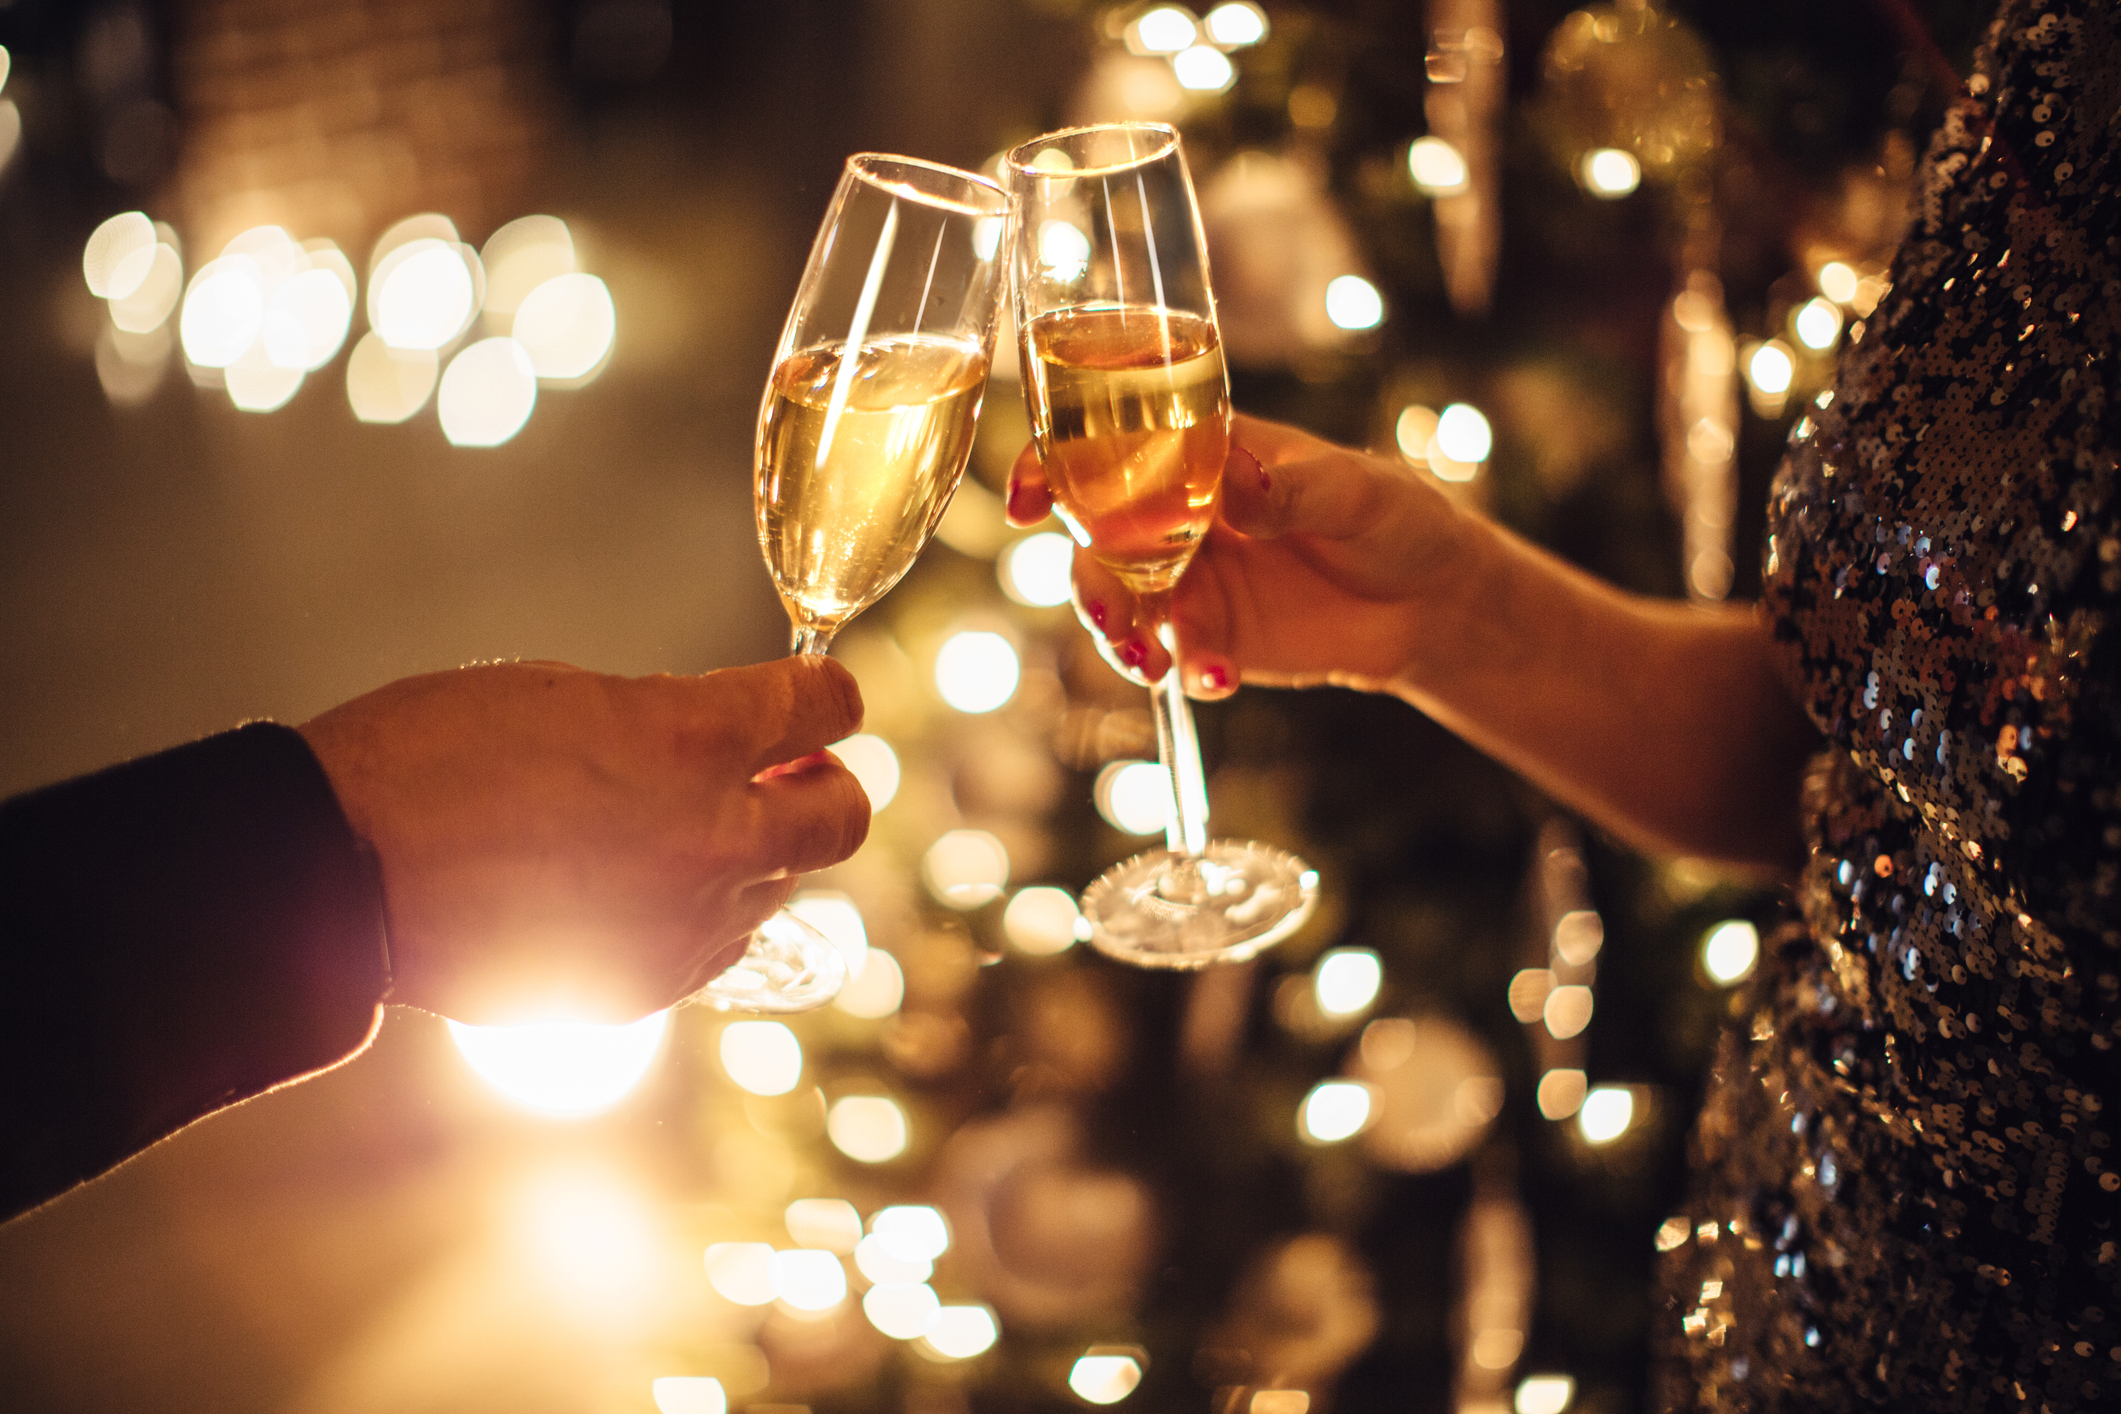 Kick-off party - Join us for the 1st Annual L'Esprit de Noel Kick-off Party, held at Shaver-Ramsey on November 15.